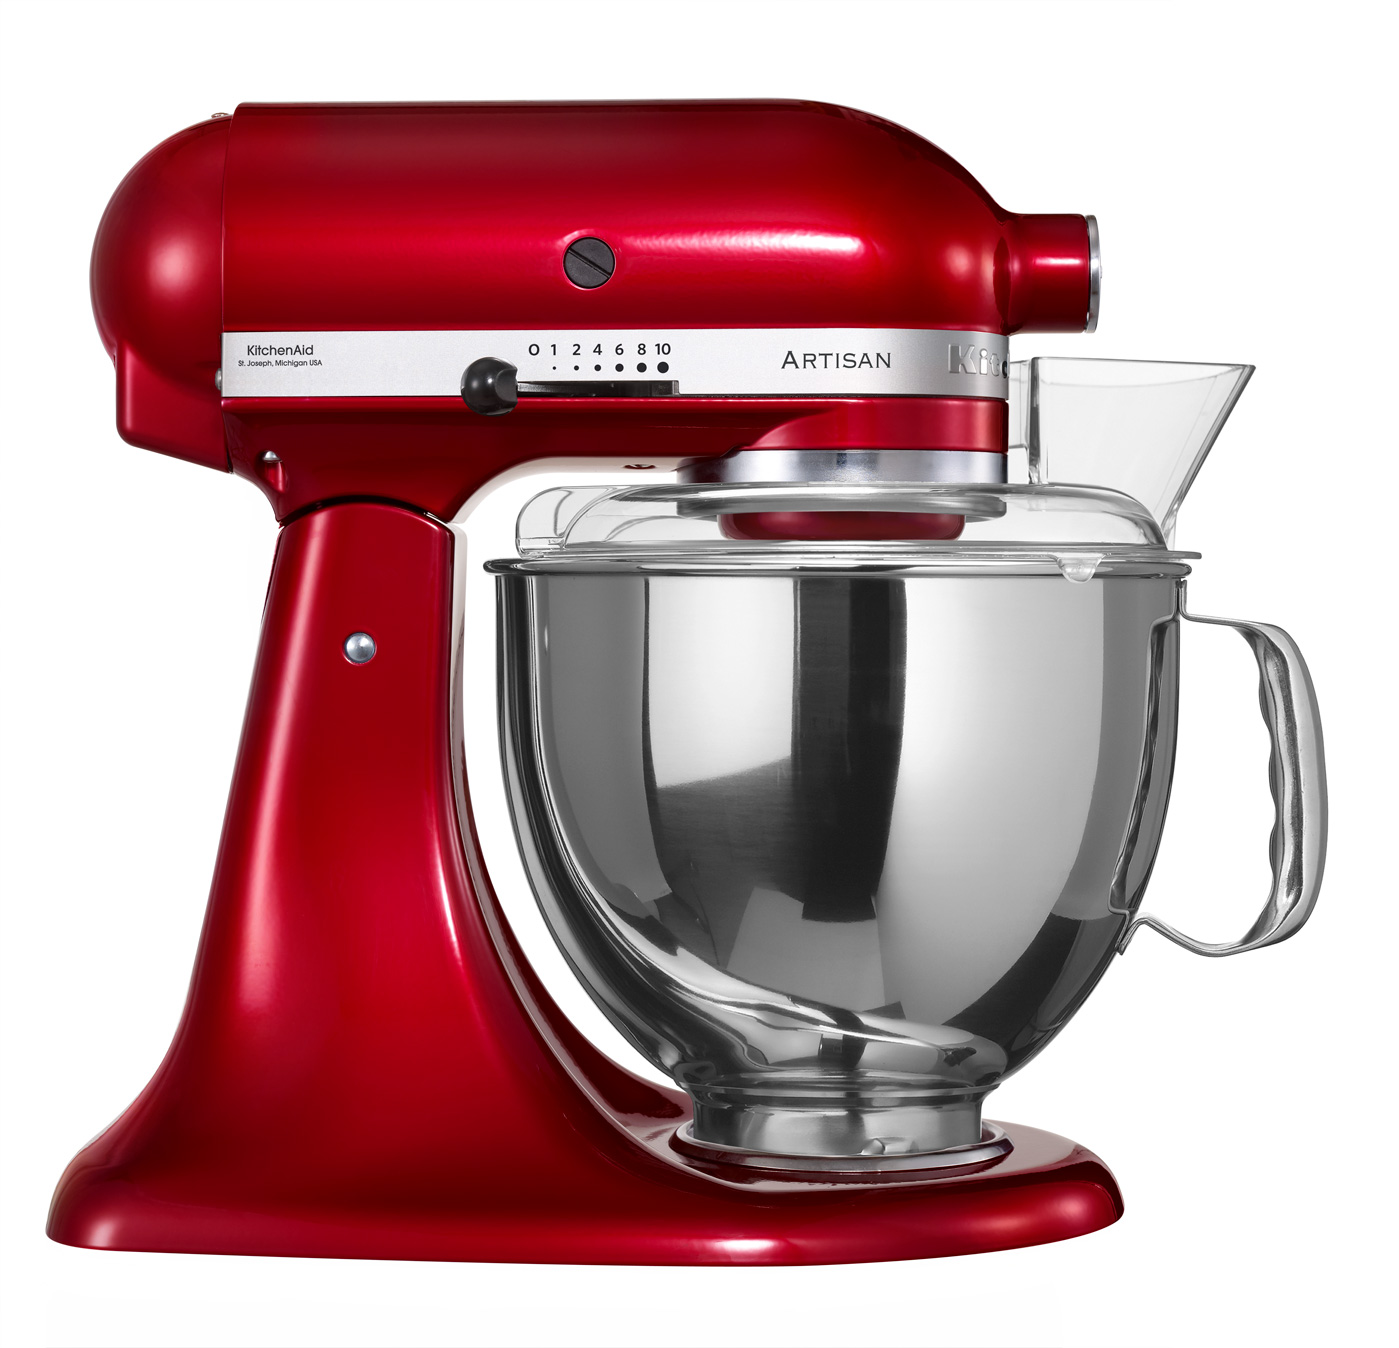 Who Makes Kitchen Aid Appliances